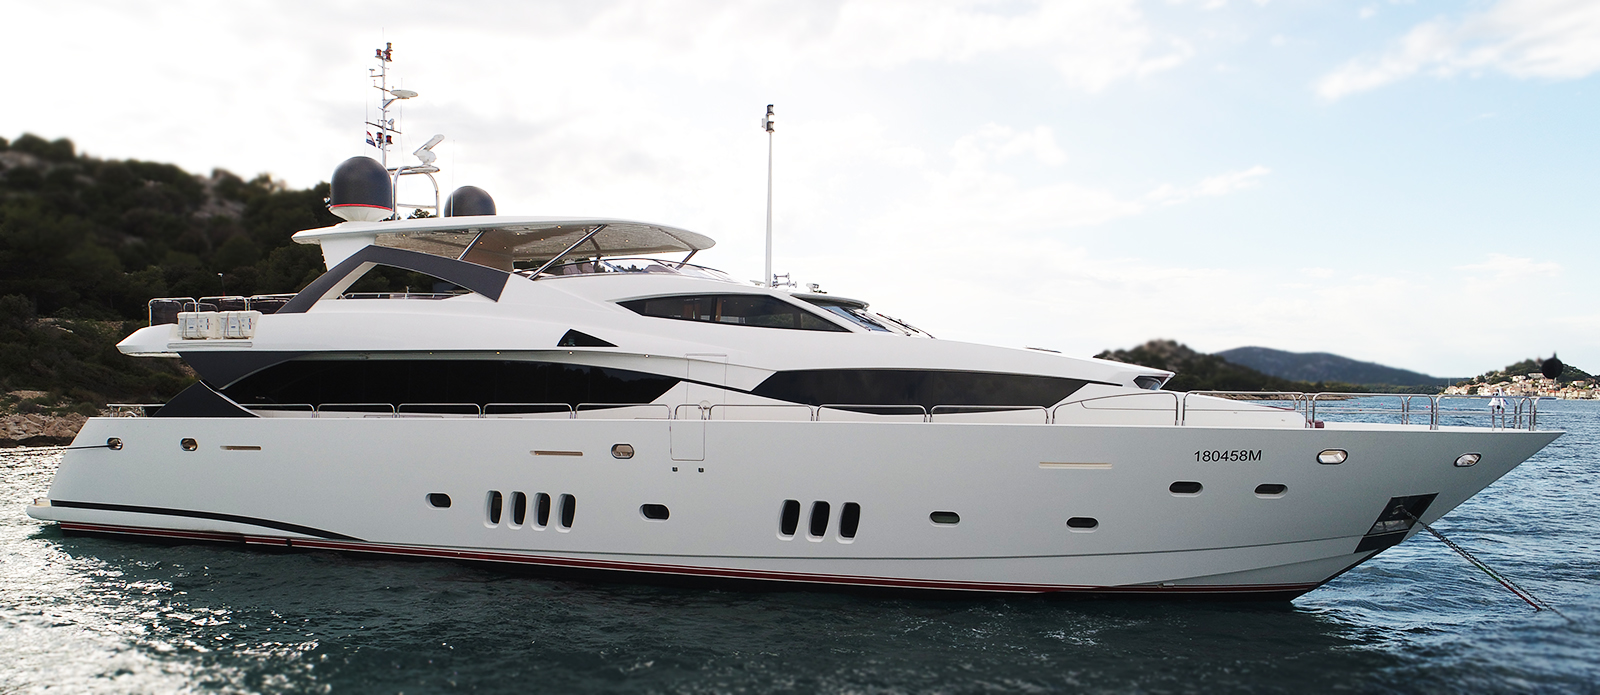 Sunseeker 34m Yacht in Croatia For Sale Exclusively with Bristow-Holmes